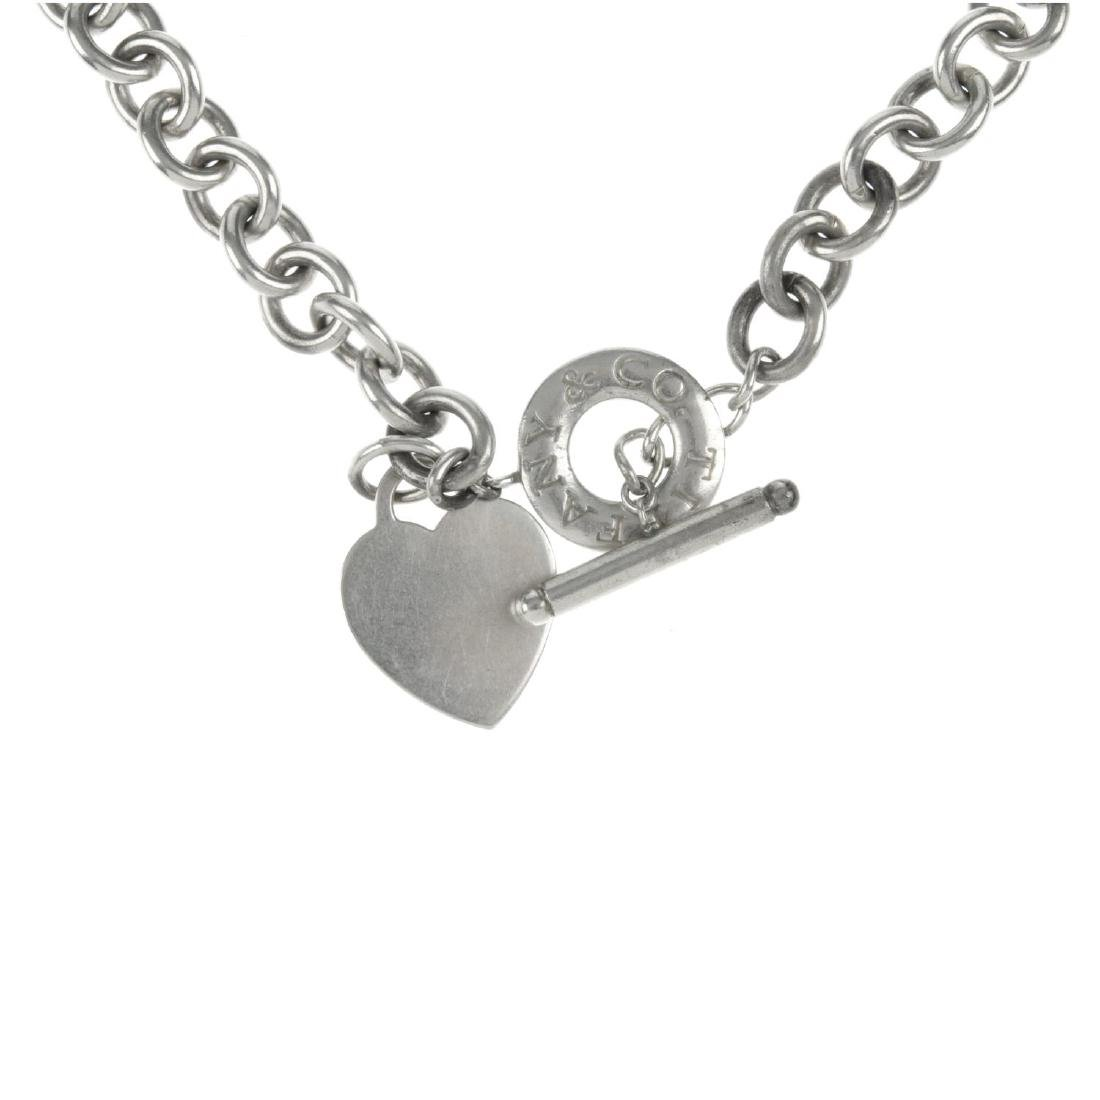 TIFFANY & CO. - a necklace. The belcher-link chain